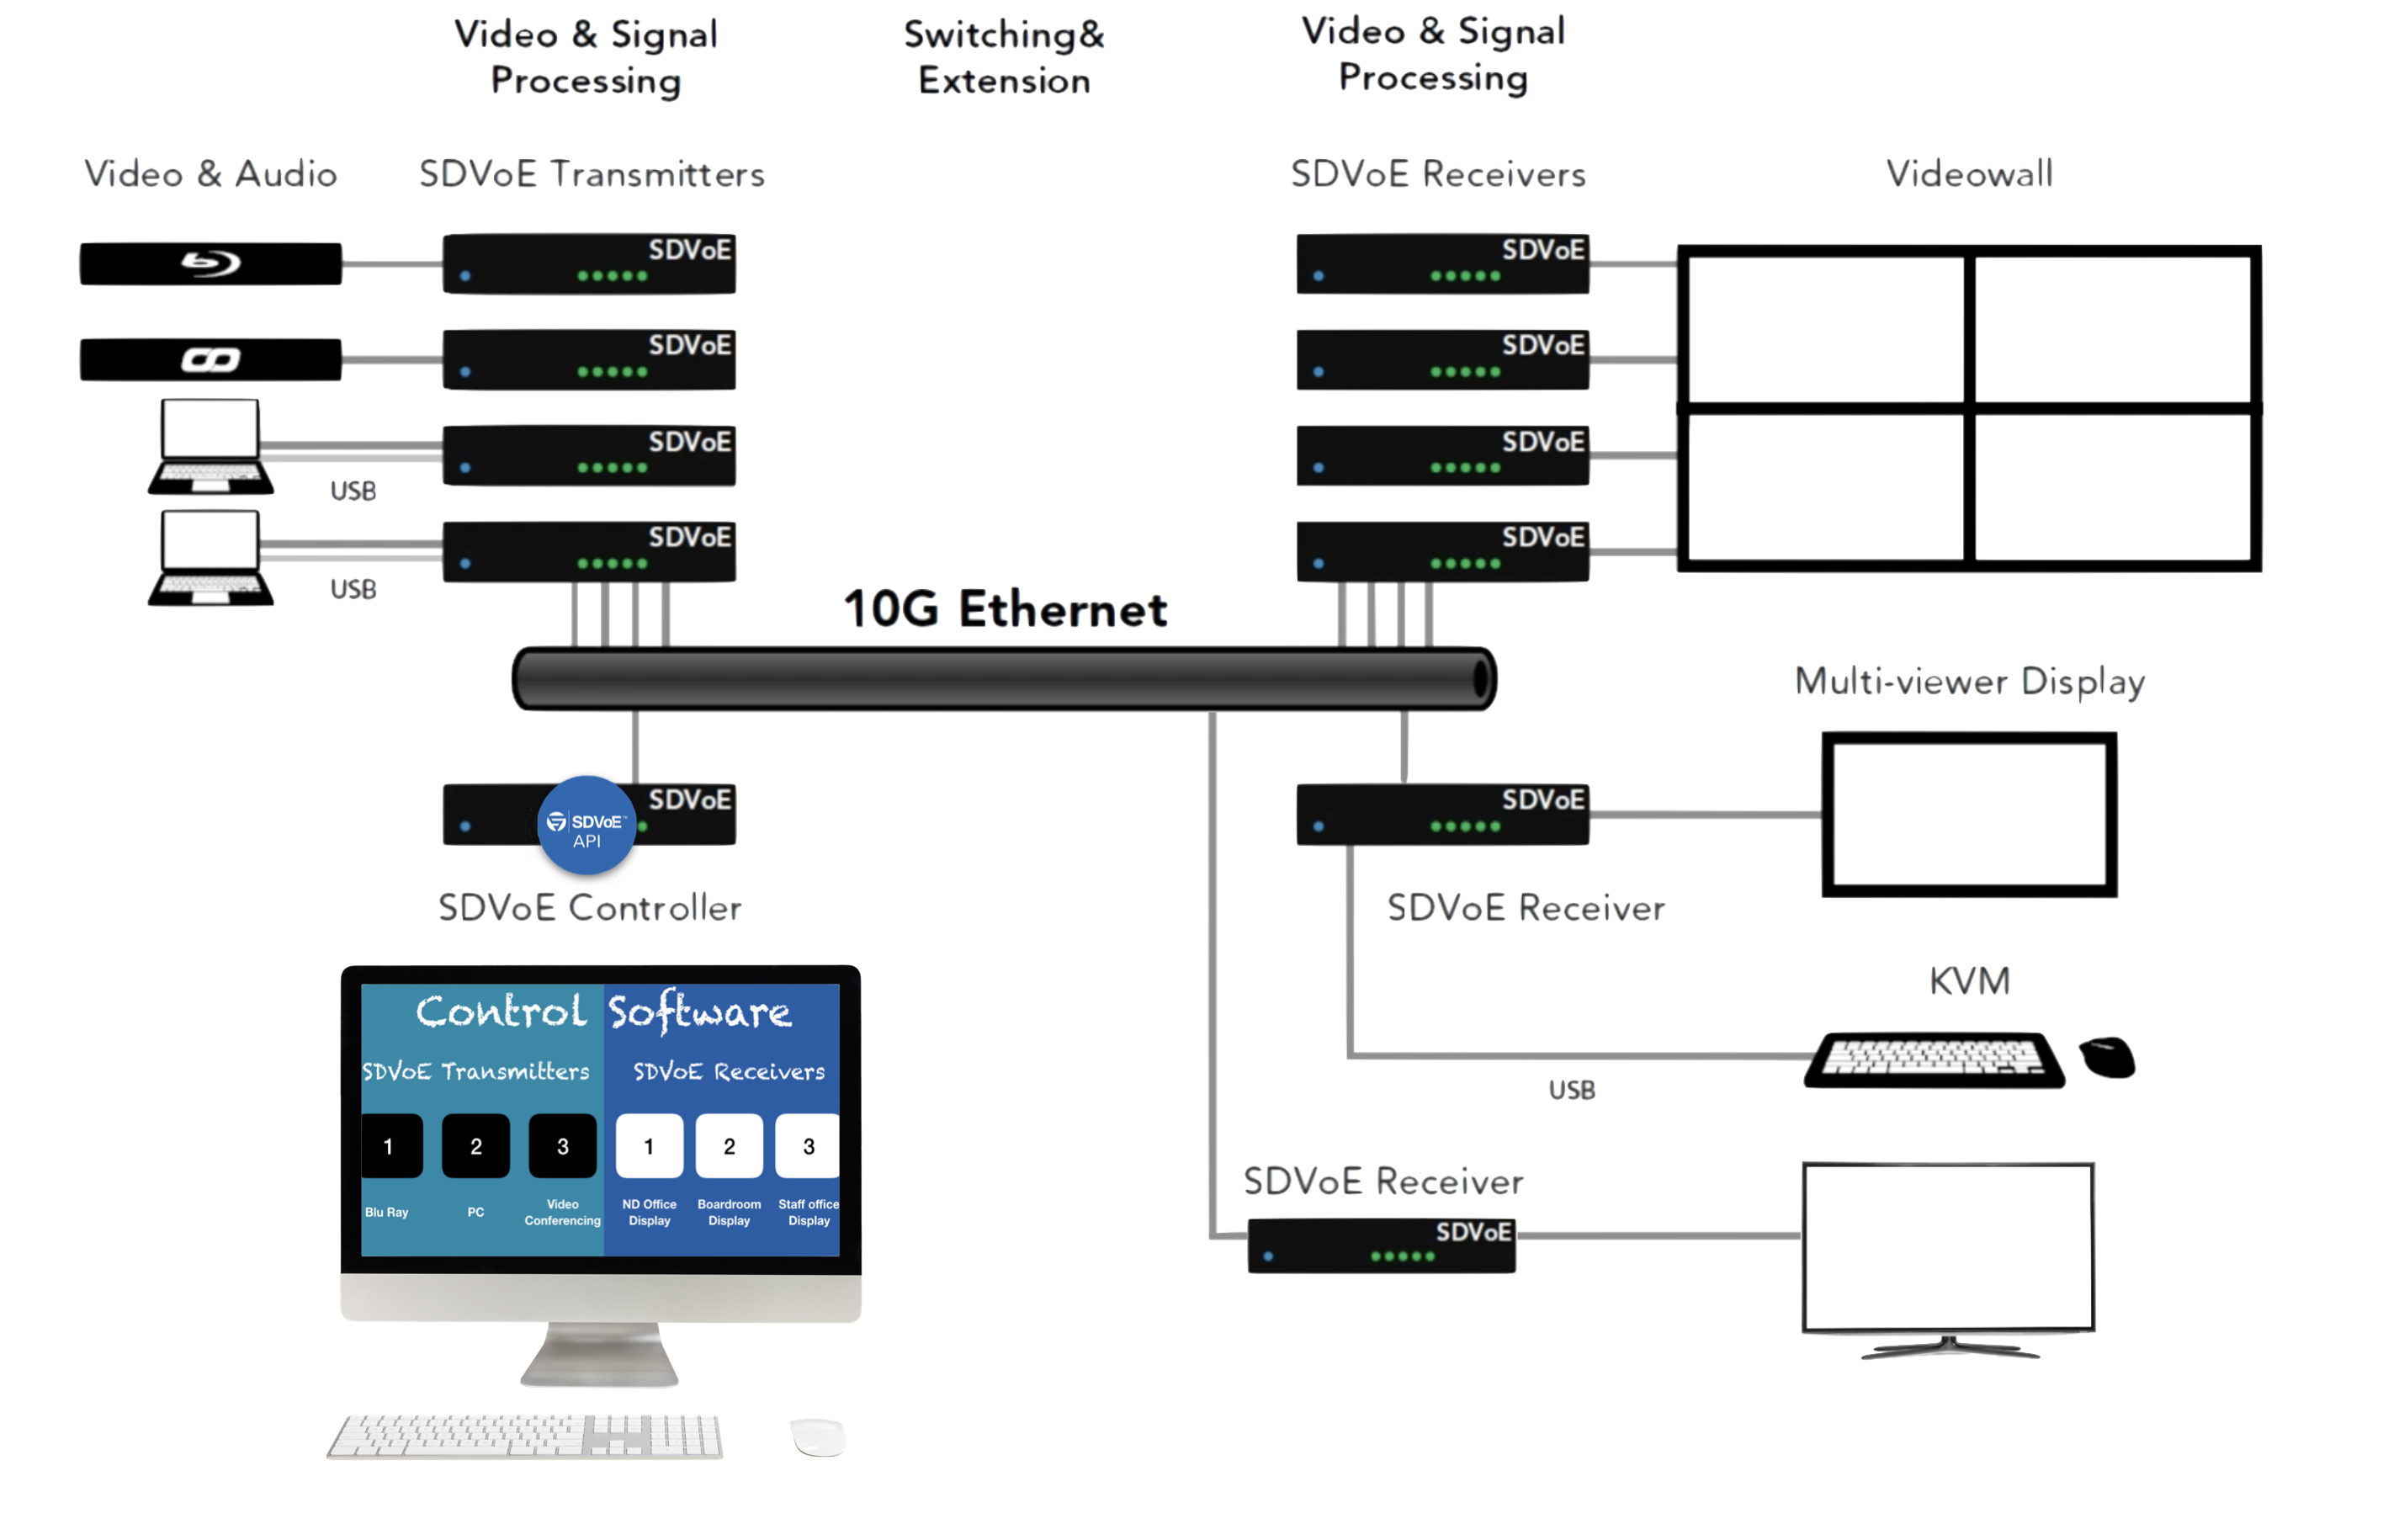 Controlling an SDVoE System